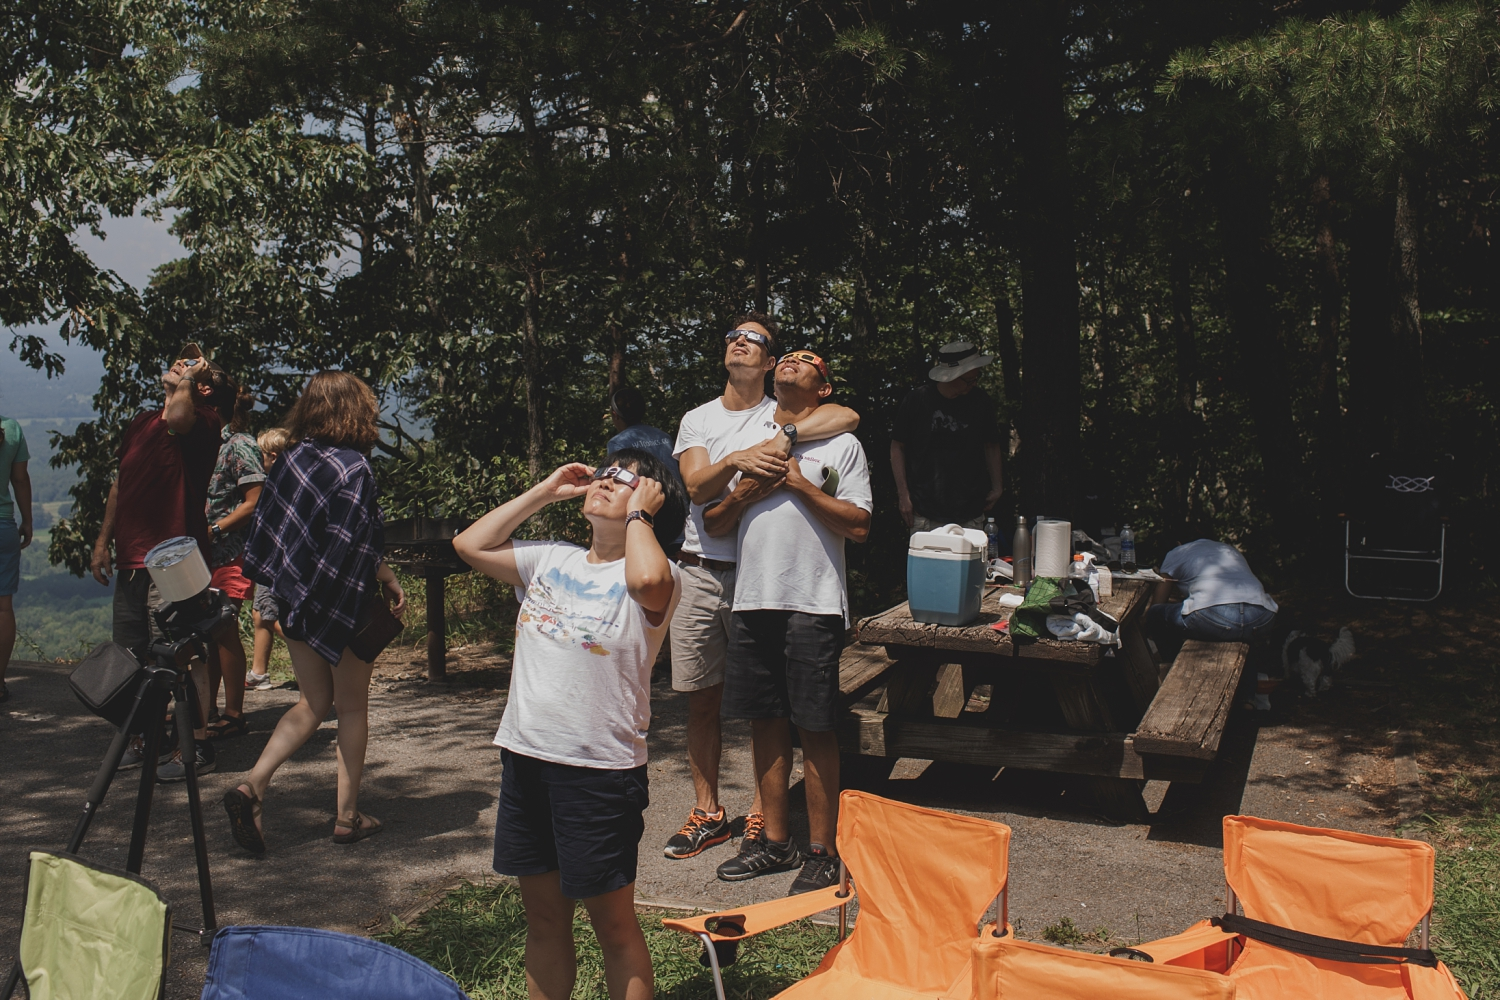 Stacy Paul Photography - destination photographer tennessee weddings eclipse 2017_0012.jpg